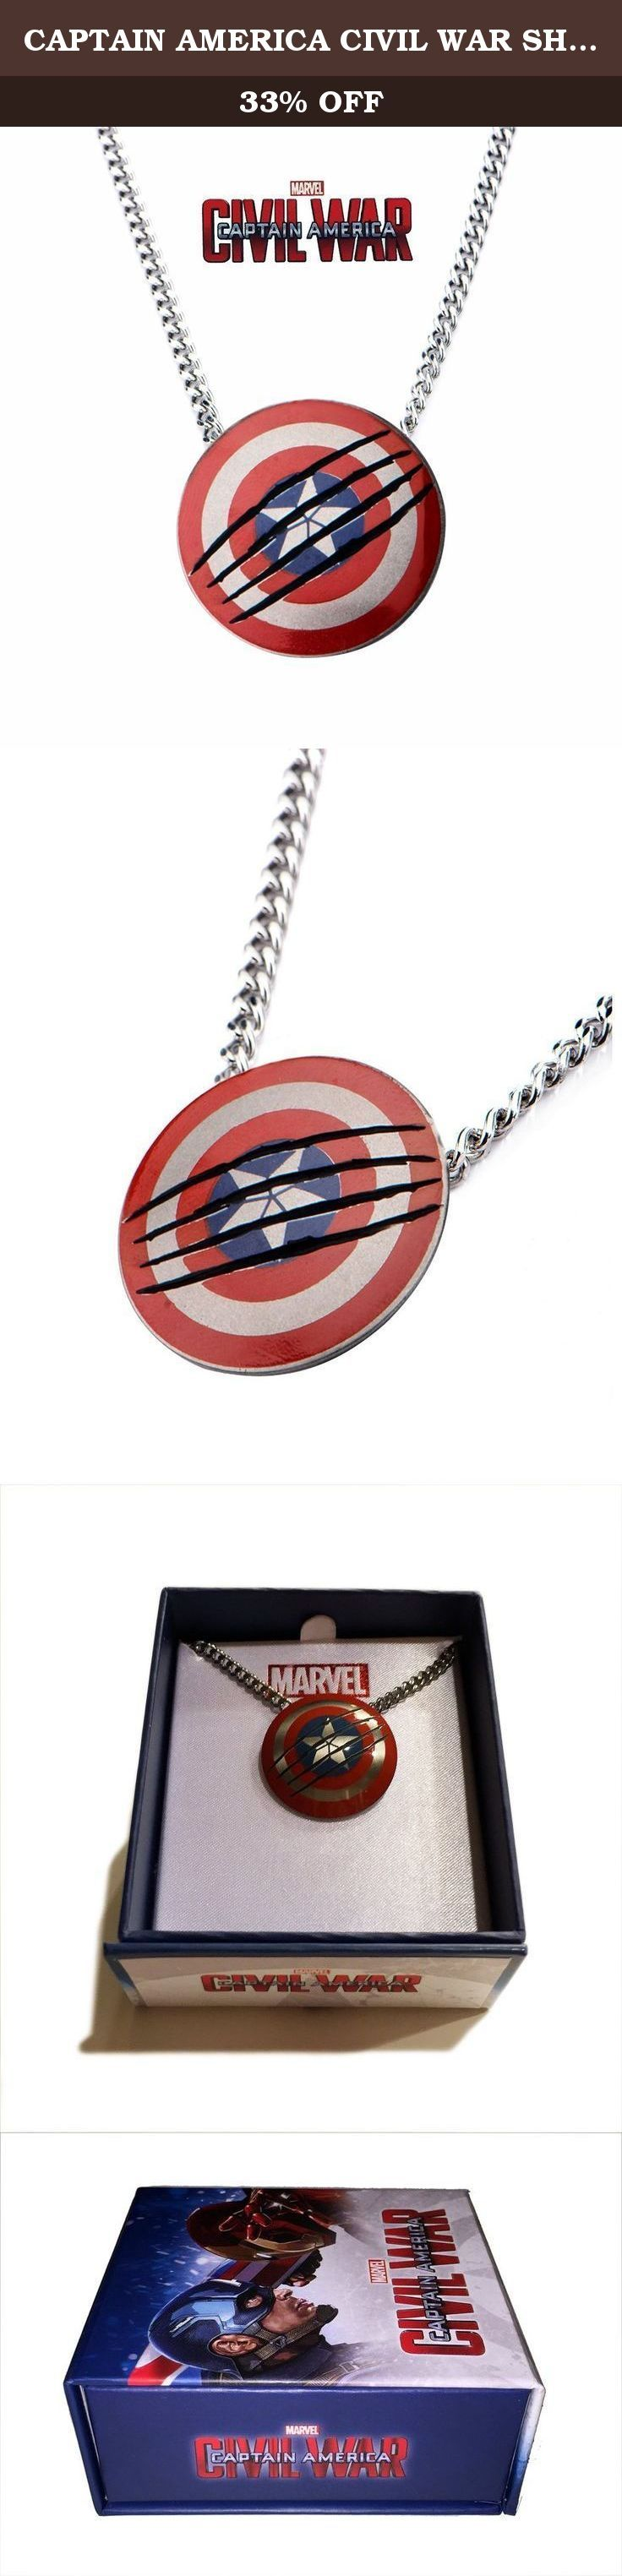 CAPTAIN AMERICA CIVIL WAR SHIELD PENDANT NECKLACE LTD. EDITION EXCLUSIVE. Captain America Civil War Exclusive Necklace features Cap's Shield as scratched and clawed by the Black Panther in the Blockbuster movie. (The Black Panther's Claws are made out of the same Vibranium Metal as the Shield.) Both the Chain and the Pendant are 100% Surgical Stainless Steel and made with the highest quality by Inox Jewelry.